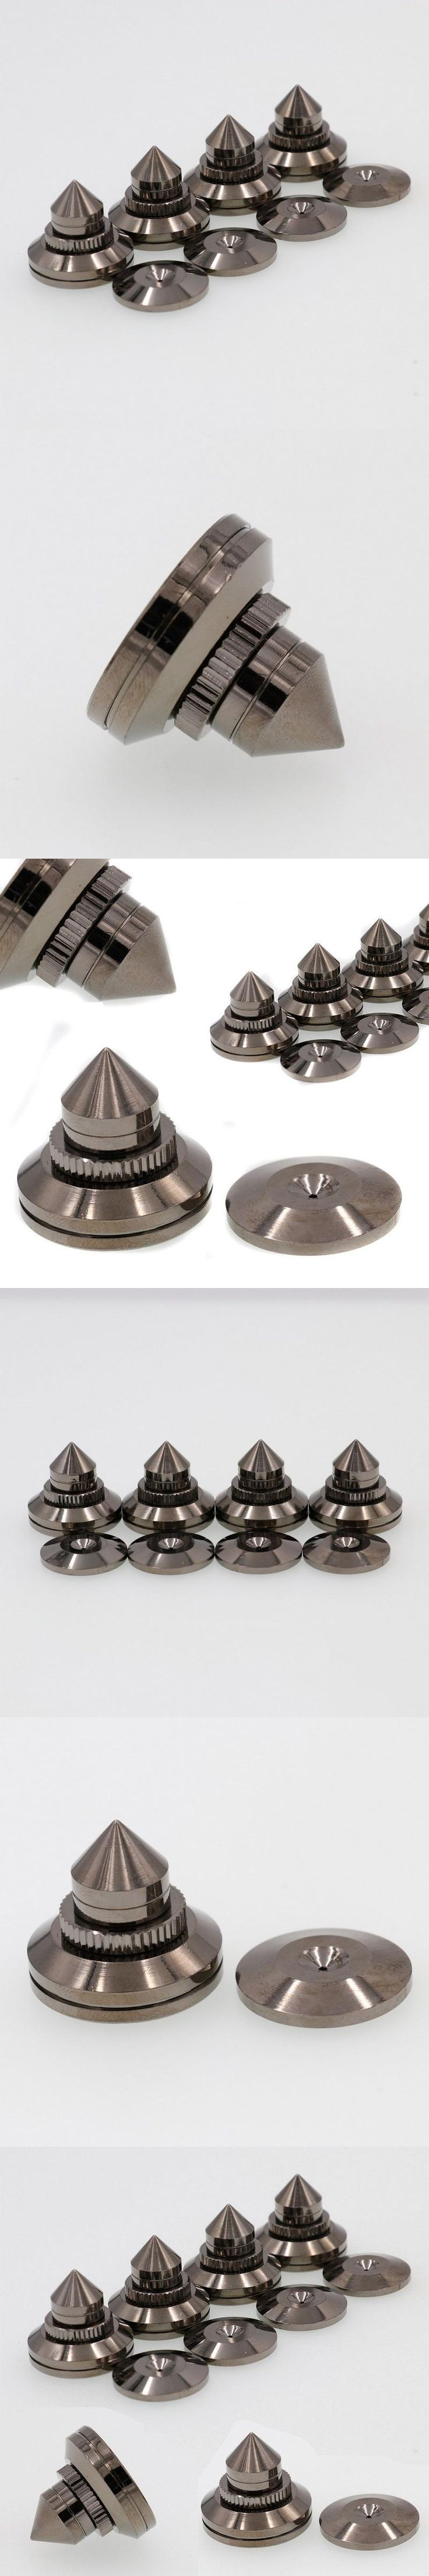 Mayitr 4sets New Brass Speaker Ampilifer CD Chassis Isolation Spikes Cones Stand Feet Pads Fit For Speaker Amplifier CD Player